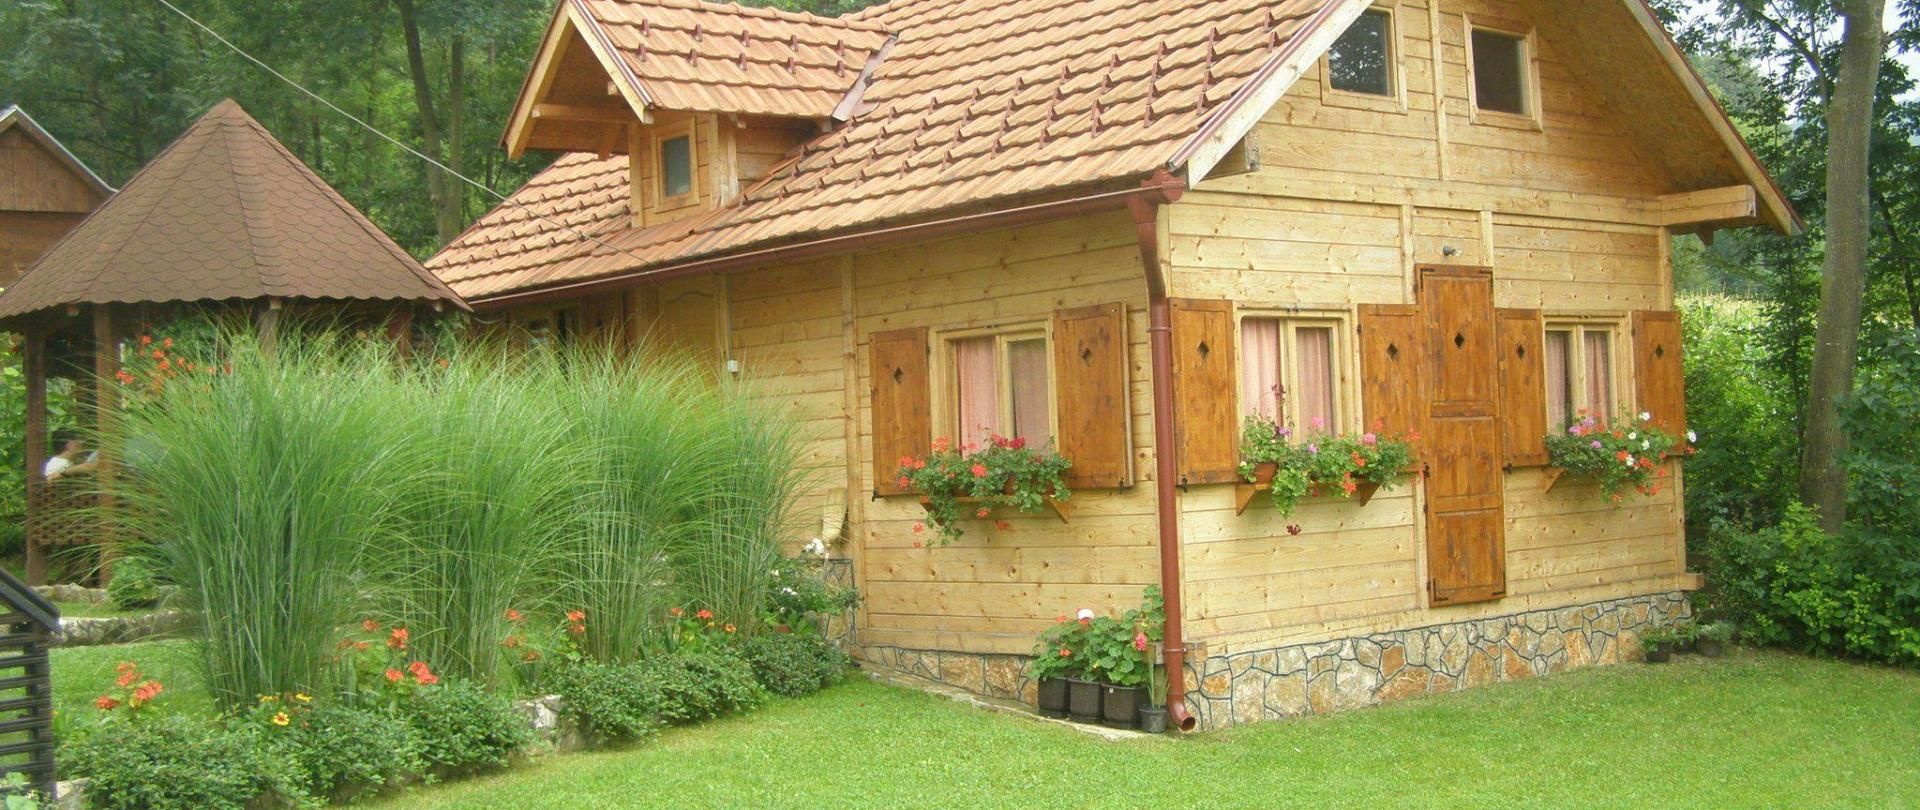 1-wooden-house-main-photo.JPG